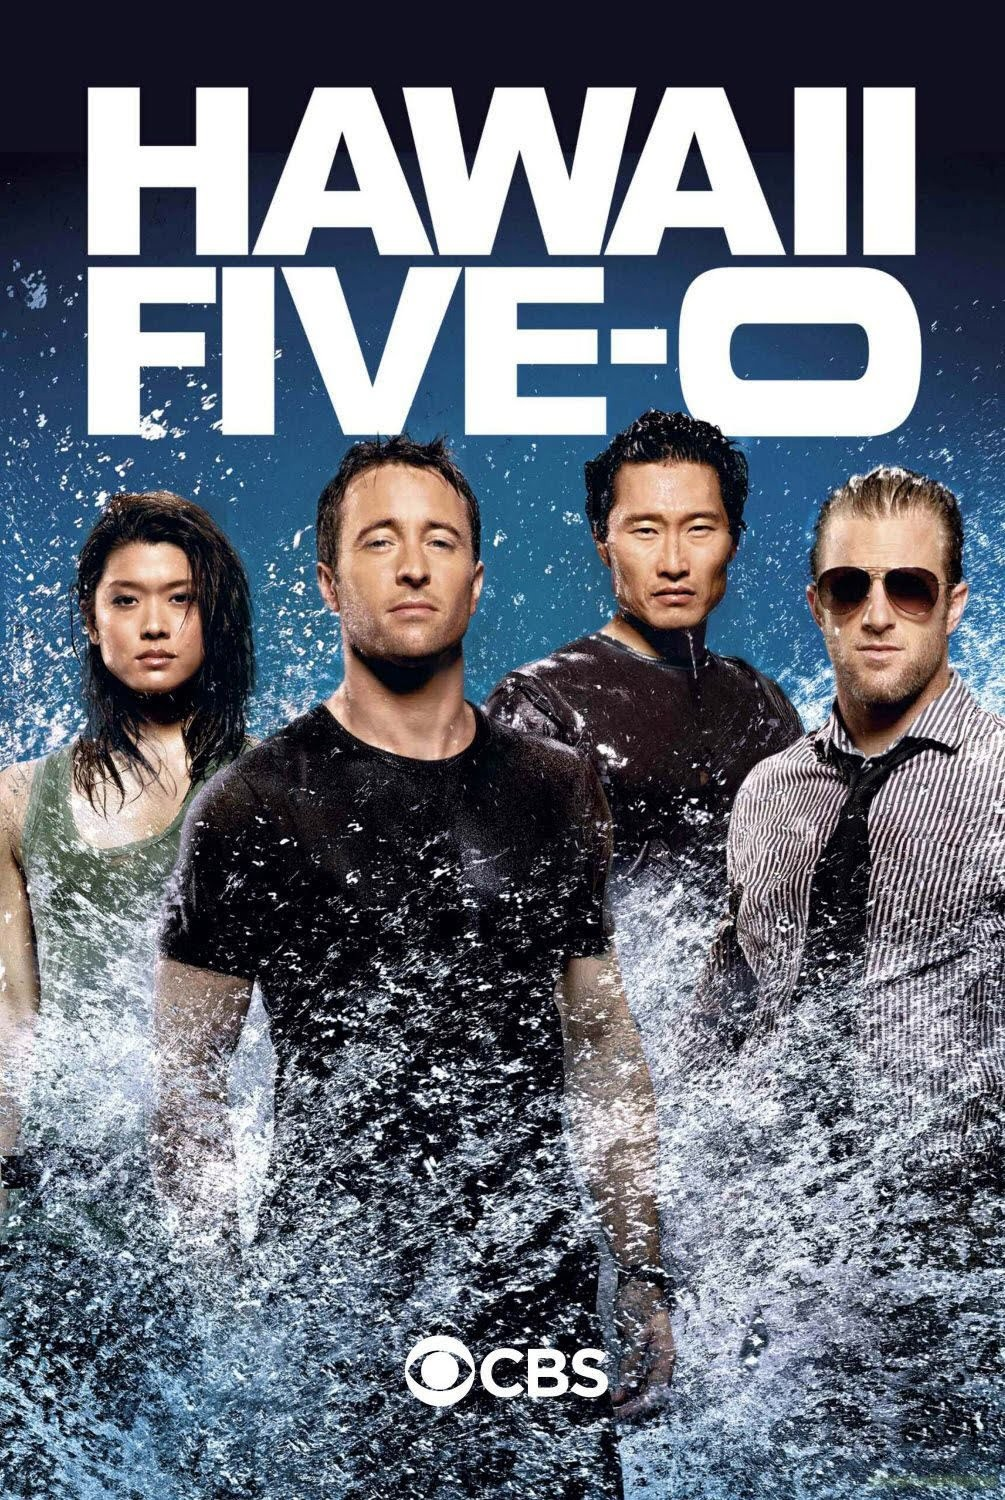 Hawaii 5-0 Saison 3 [08] [HDTV] [MULTI] [FRENCH]